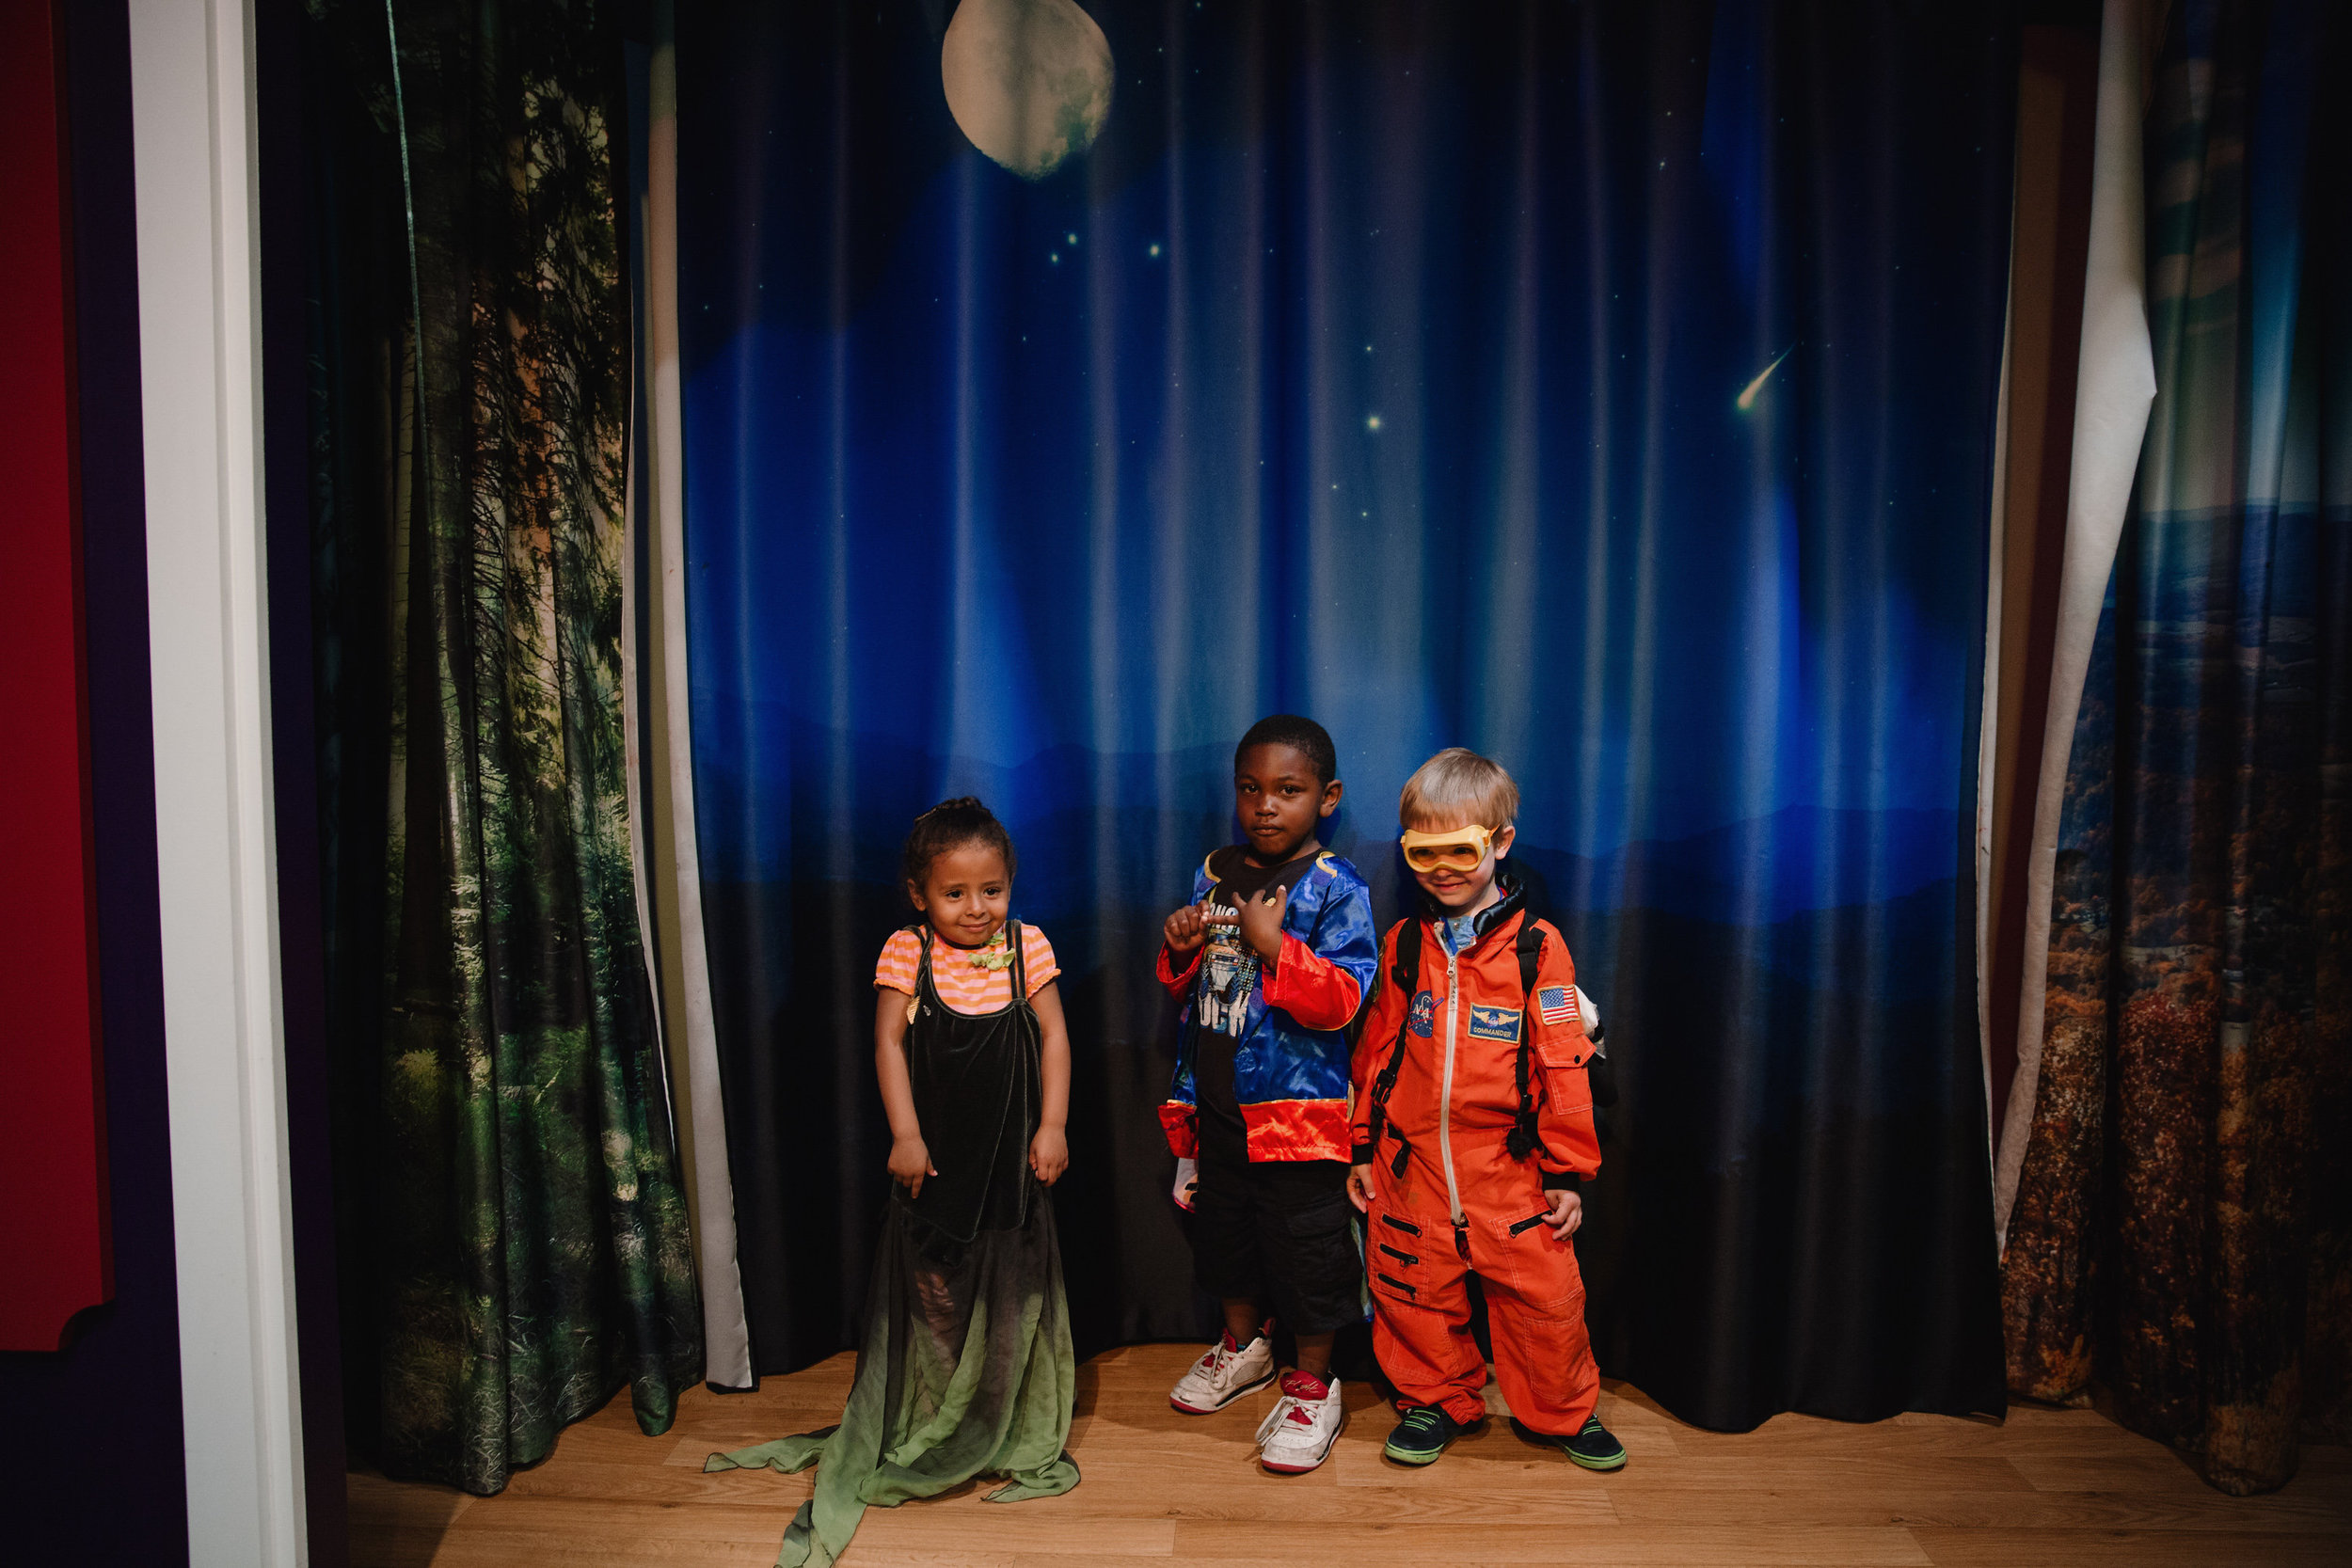 Playmakers are annual supporters who celebrate play and provide funds to support exhibits, programs, scholarships, and Museum operations. Meet the Hendersons, long-time supporters.